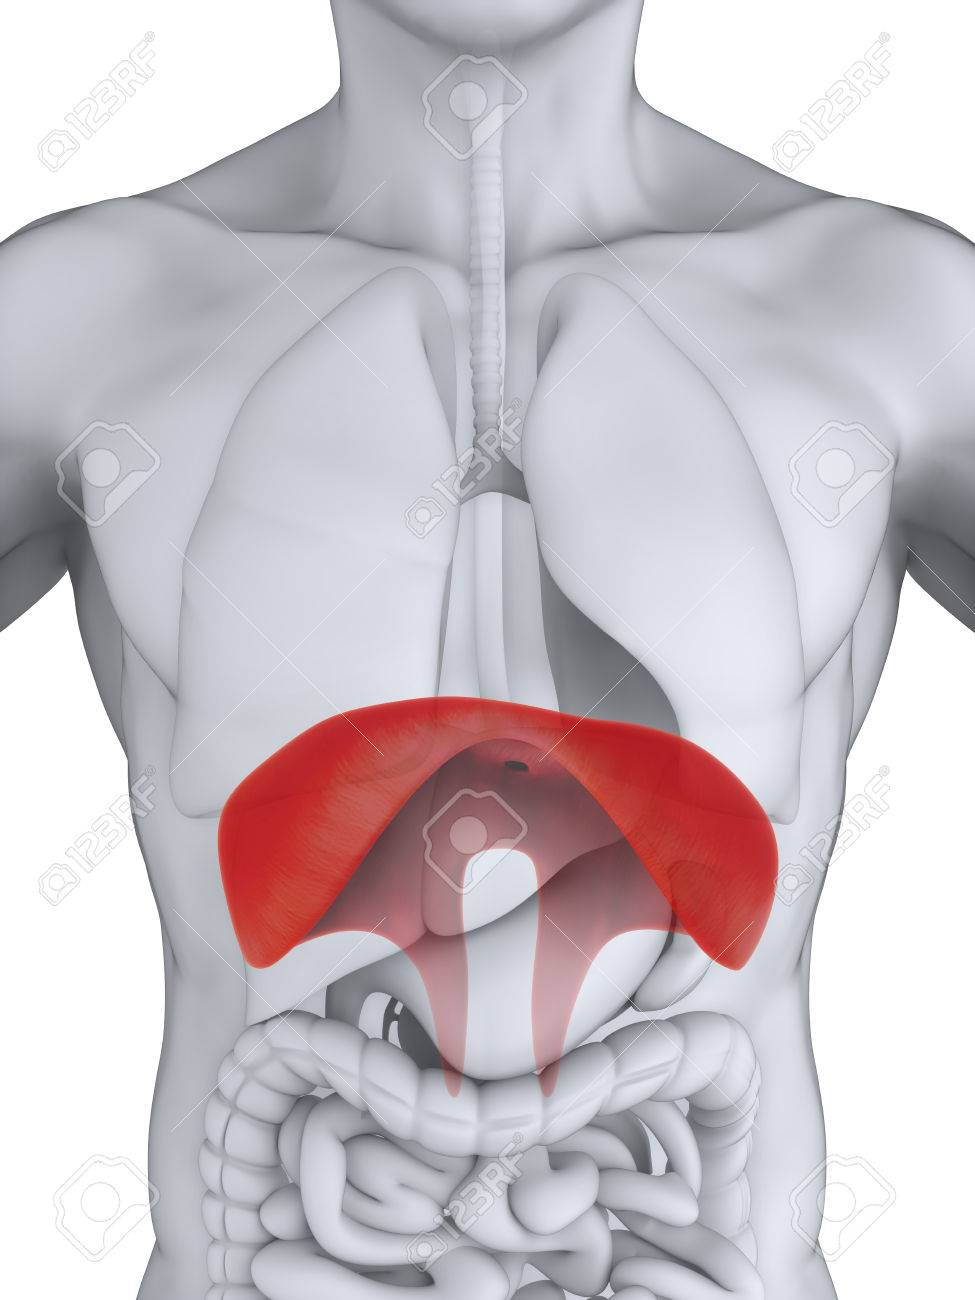 Human Diaphragm Anatomy Stock Photo Picture And Royalty Free Image